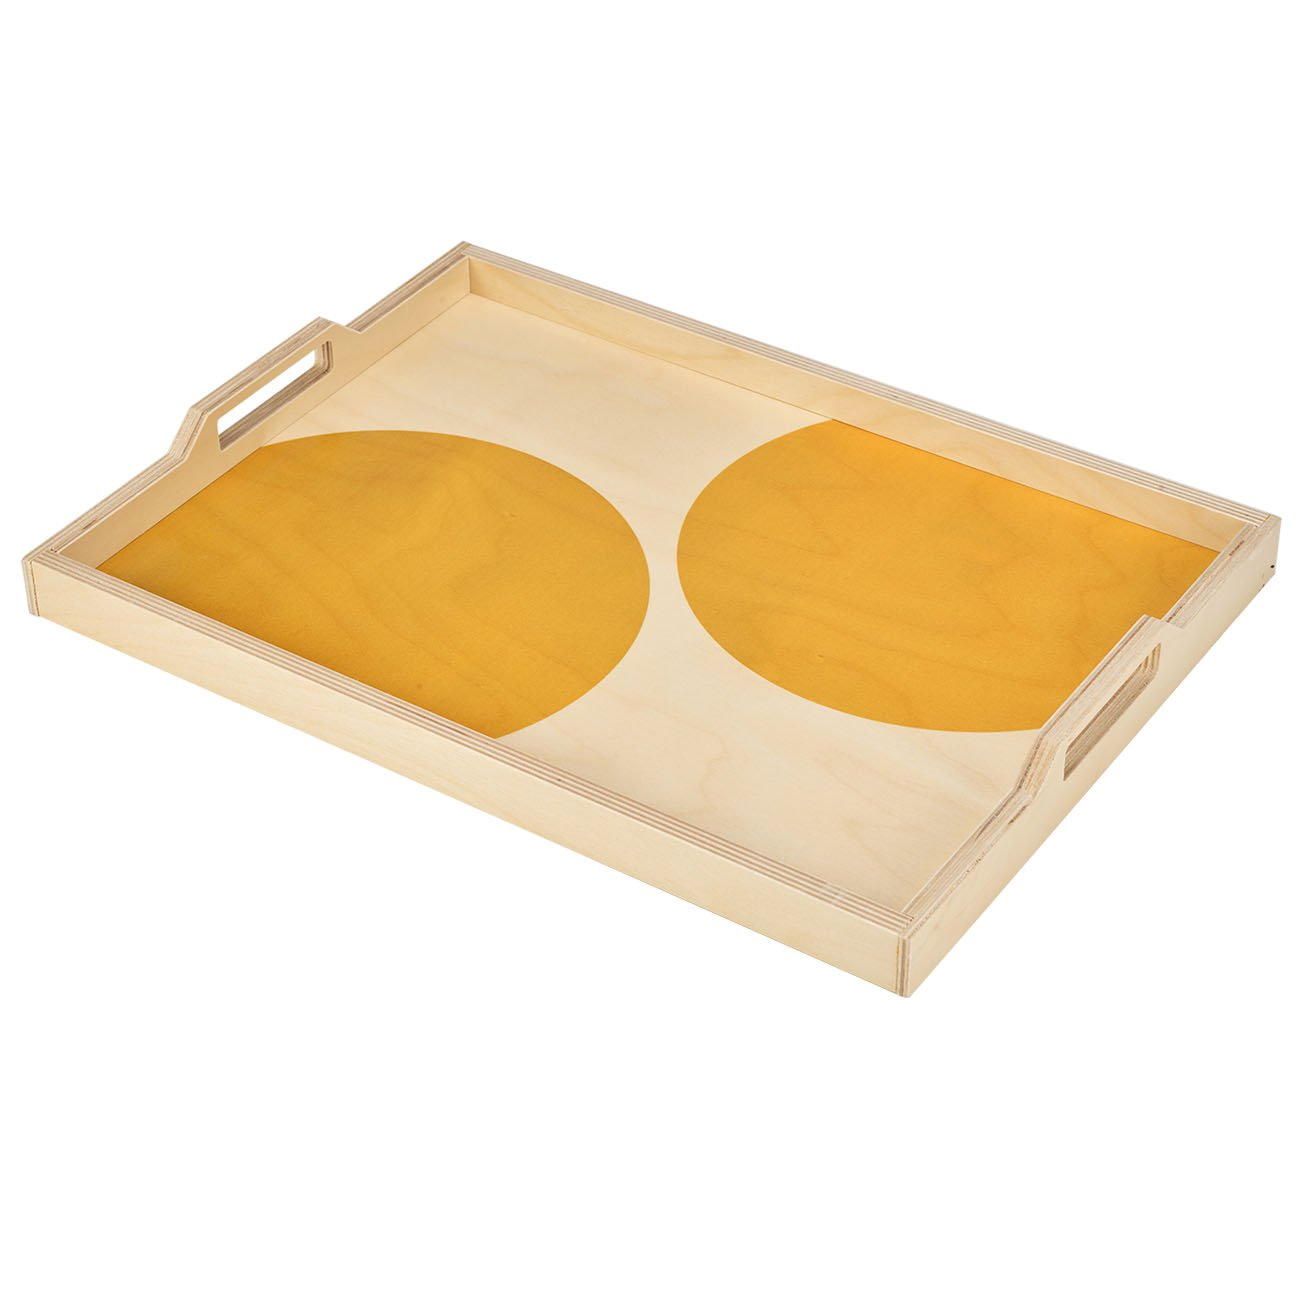 Wolfum: Tray in Yellow Dot